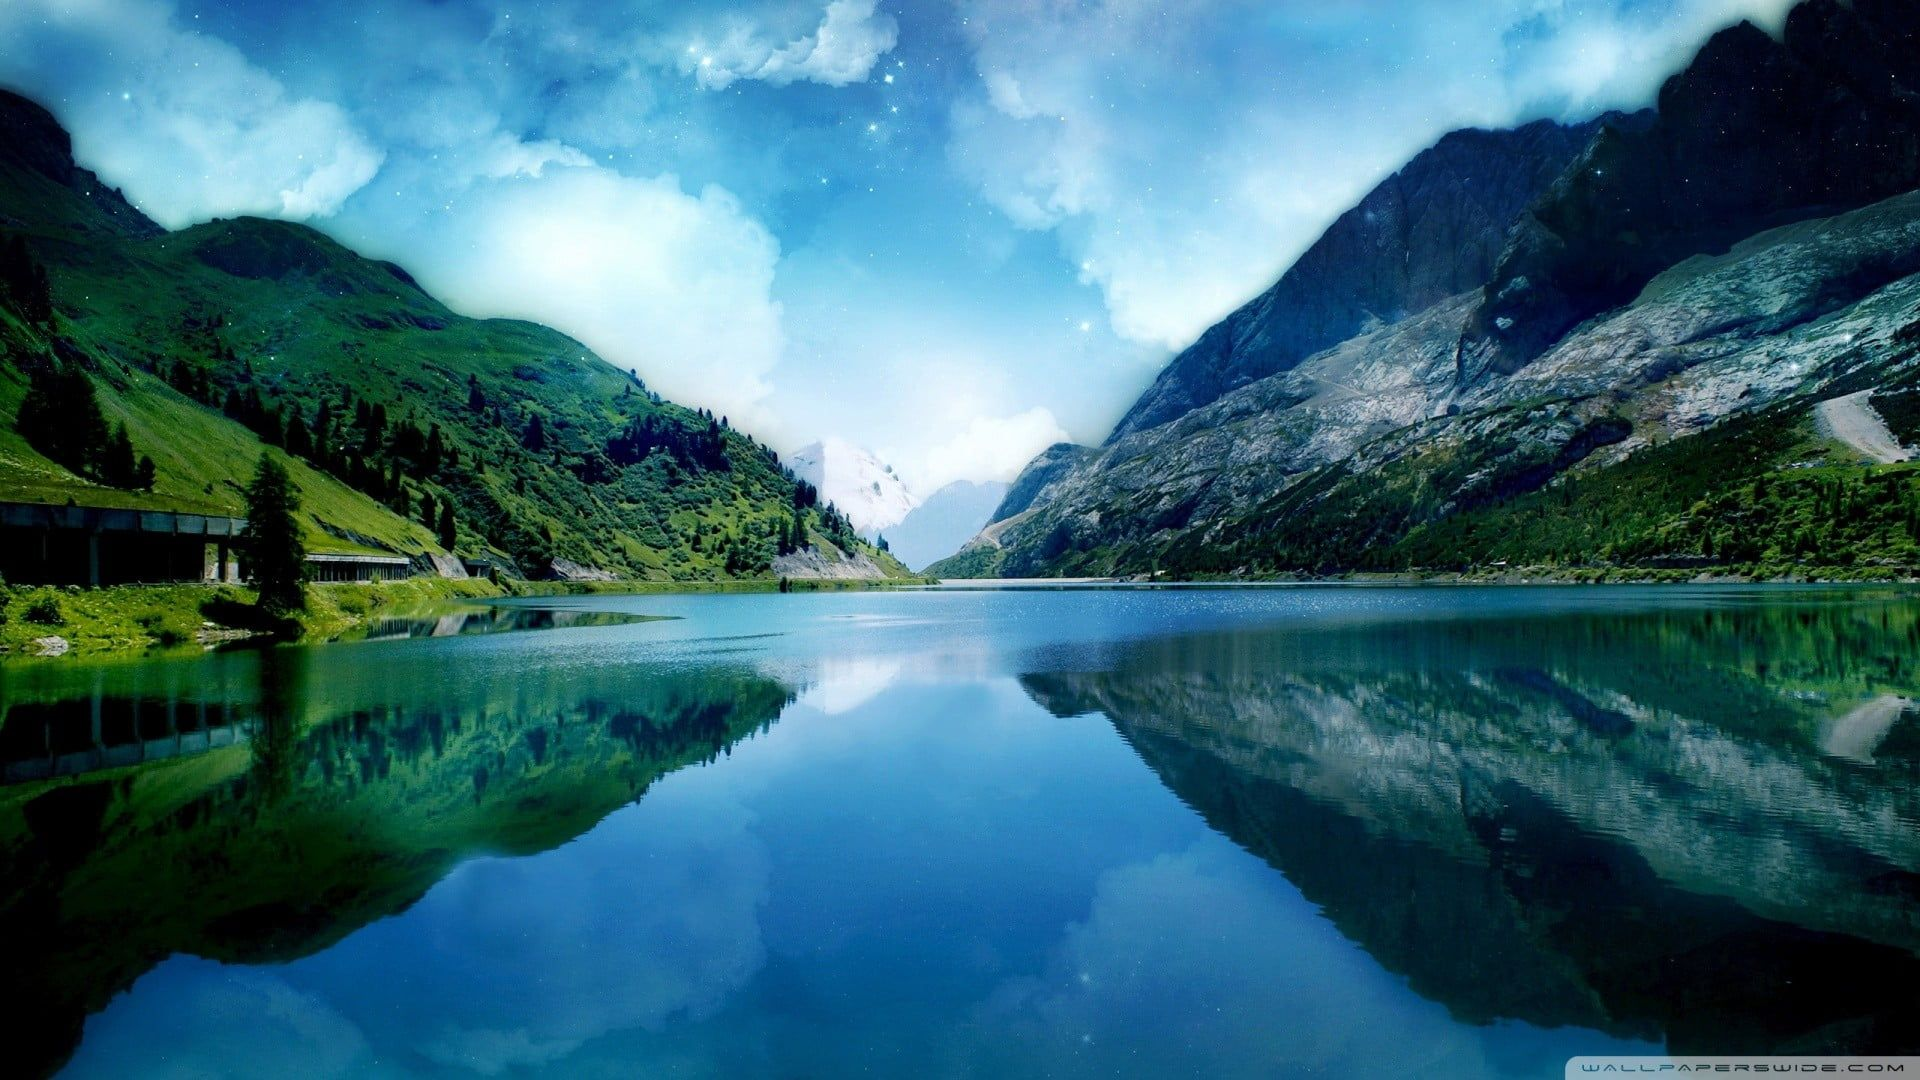 Lake Digital Wallpaper Body Of Water With Reflection Of Mountain Nature Lake Lands Beautiful Landscape Wallpaper Landscape Wallpaper Best Nature Wallpapers